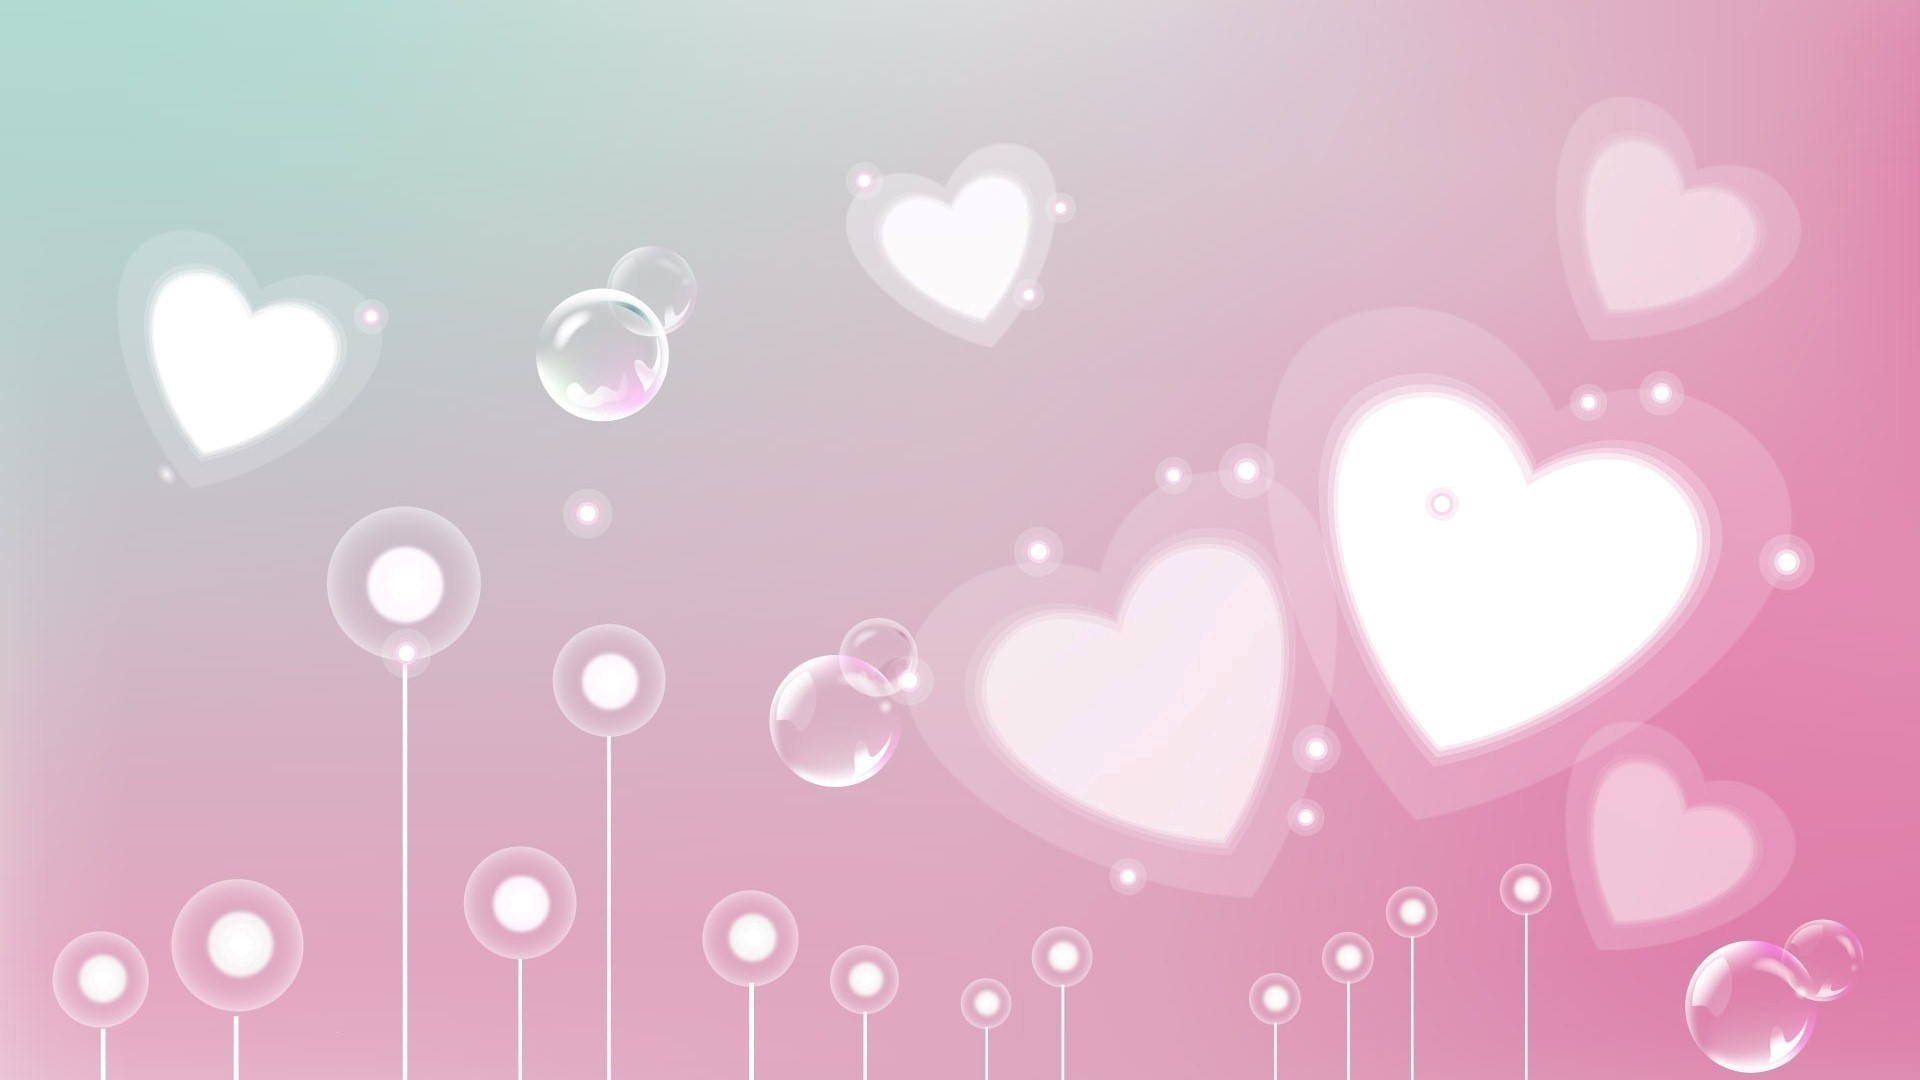 Pink Heart Wallpaper for pc